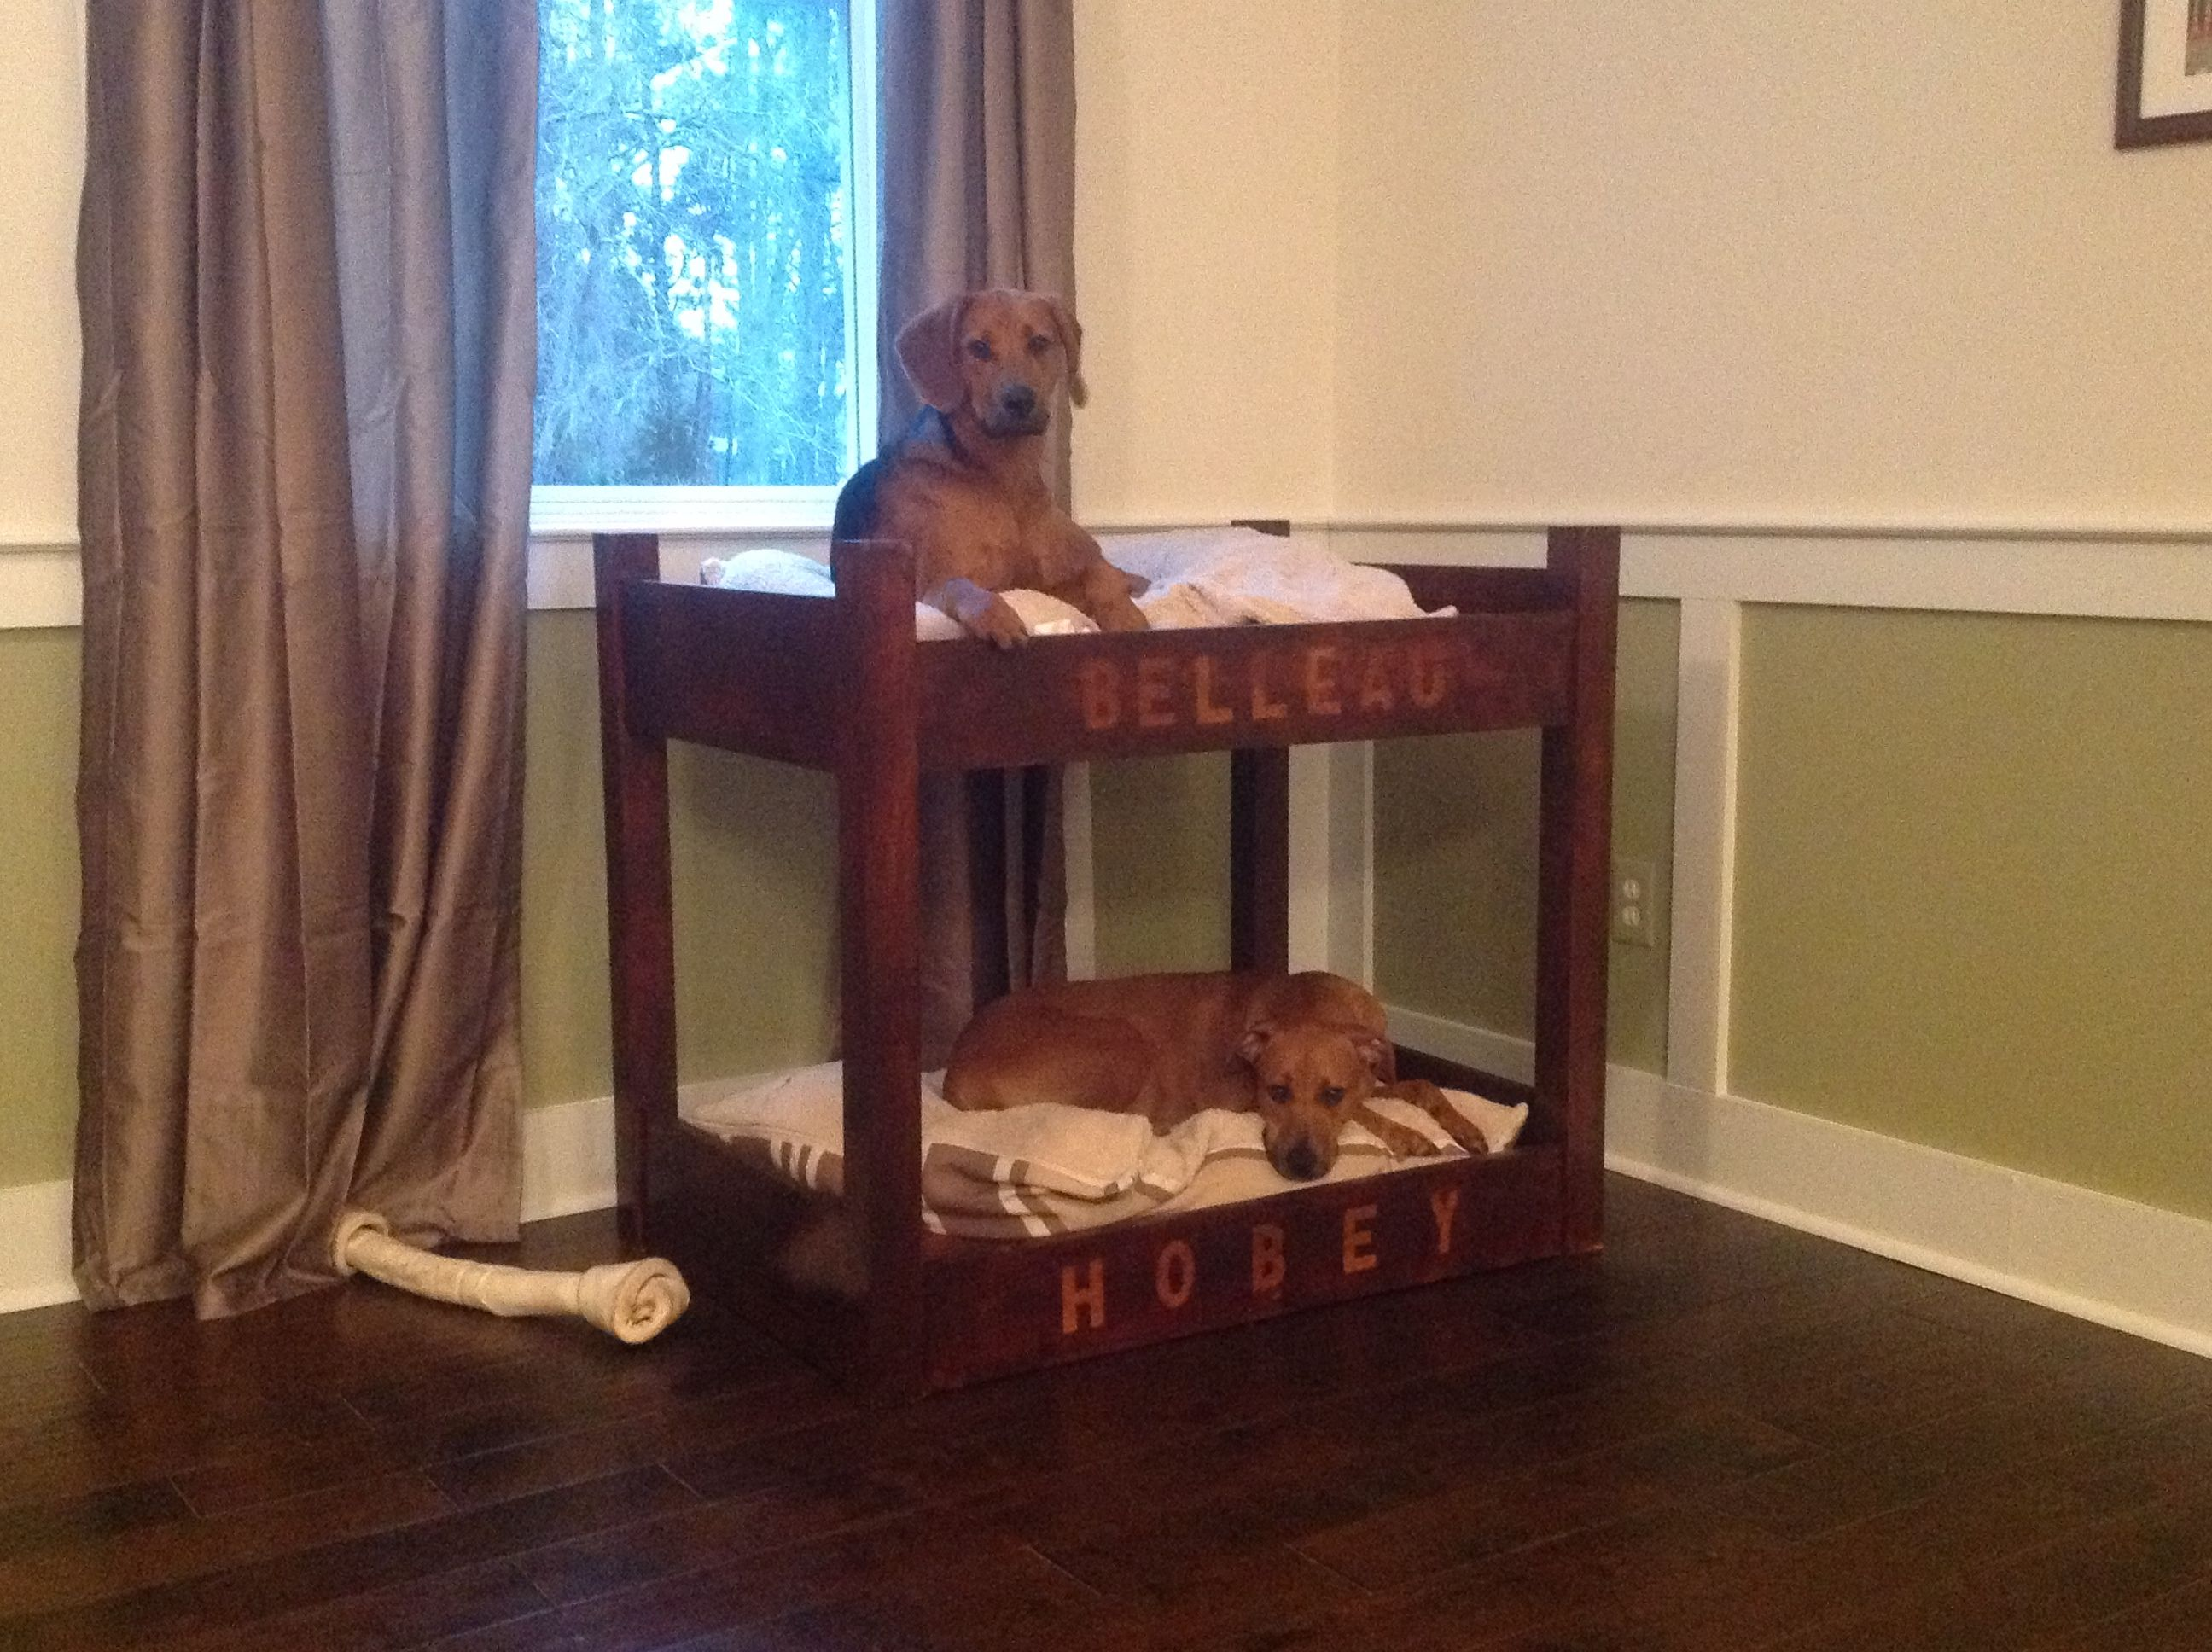 Dog bunk bed my husband made for Christmas Saw this on my board